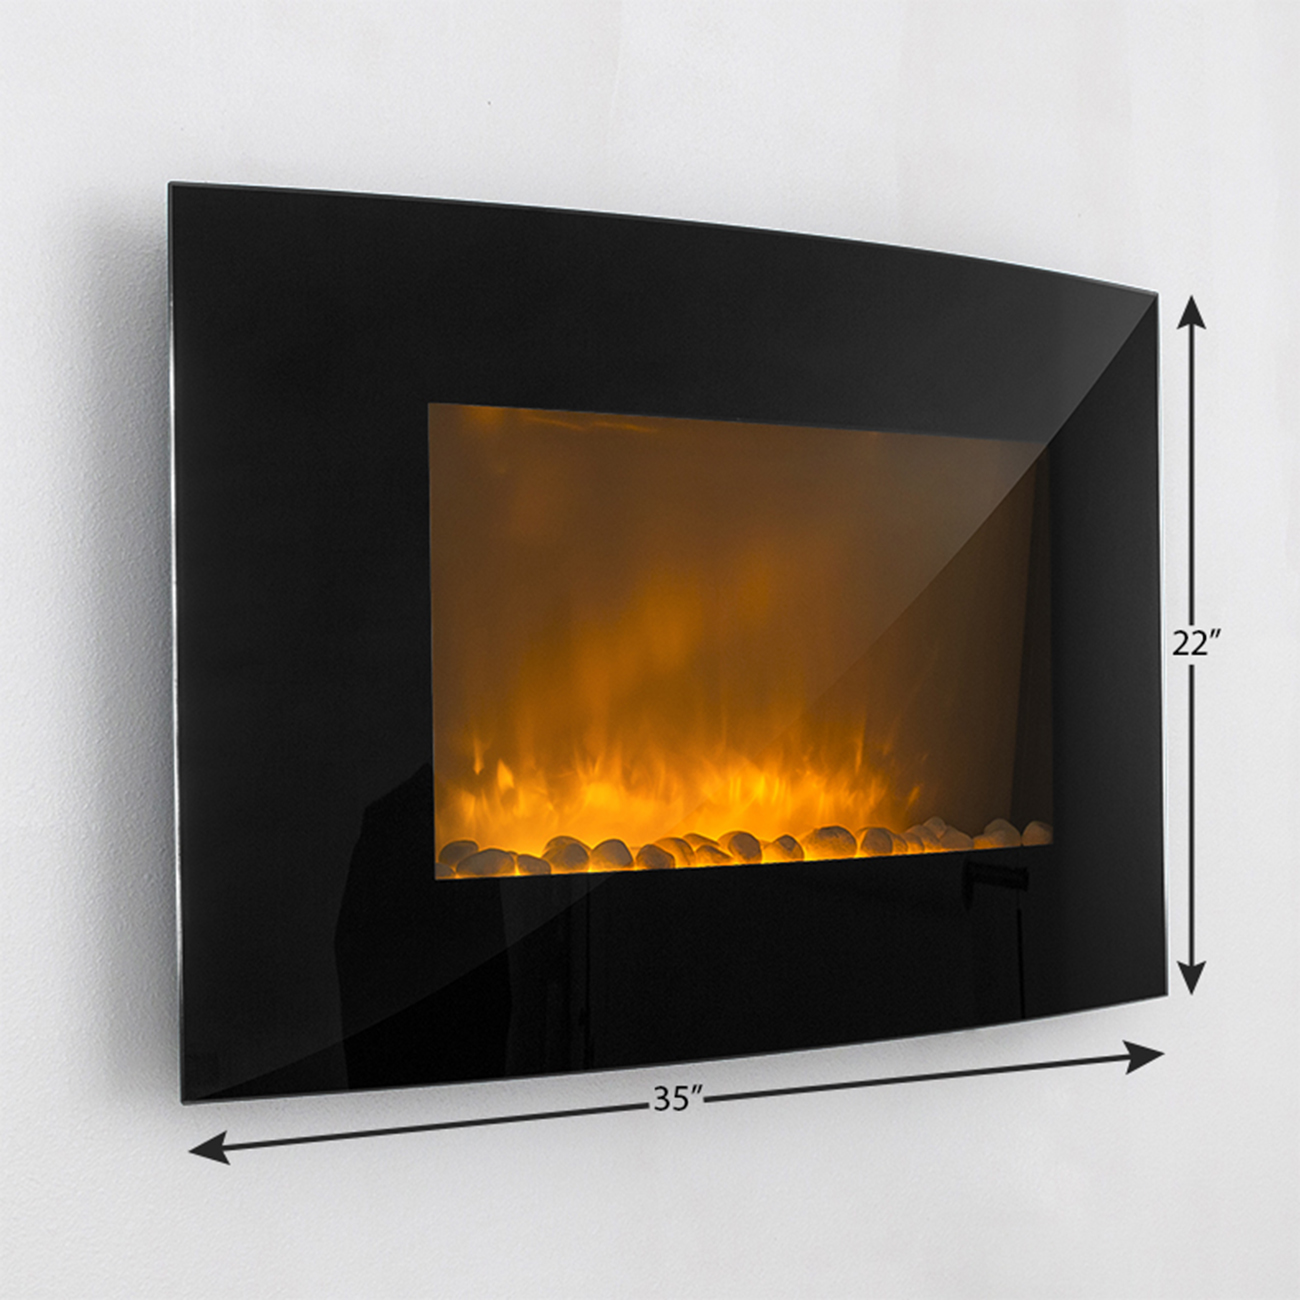 large 1500w heat adjustable electric wall mount fireplace